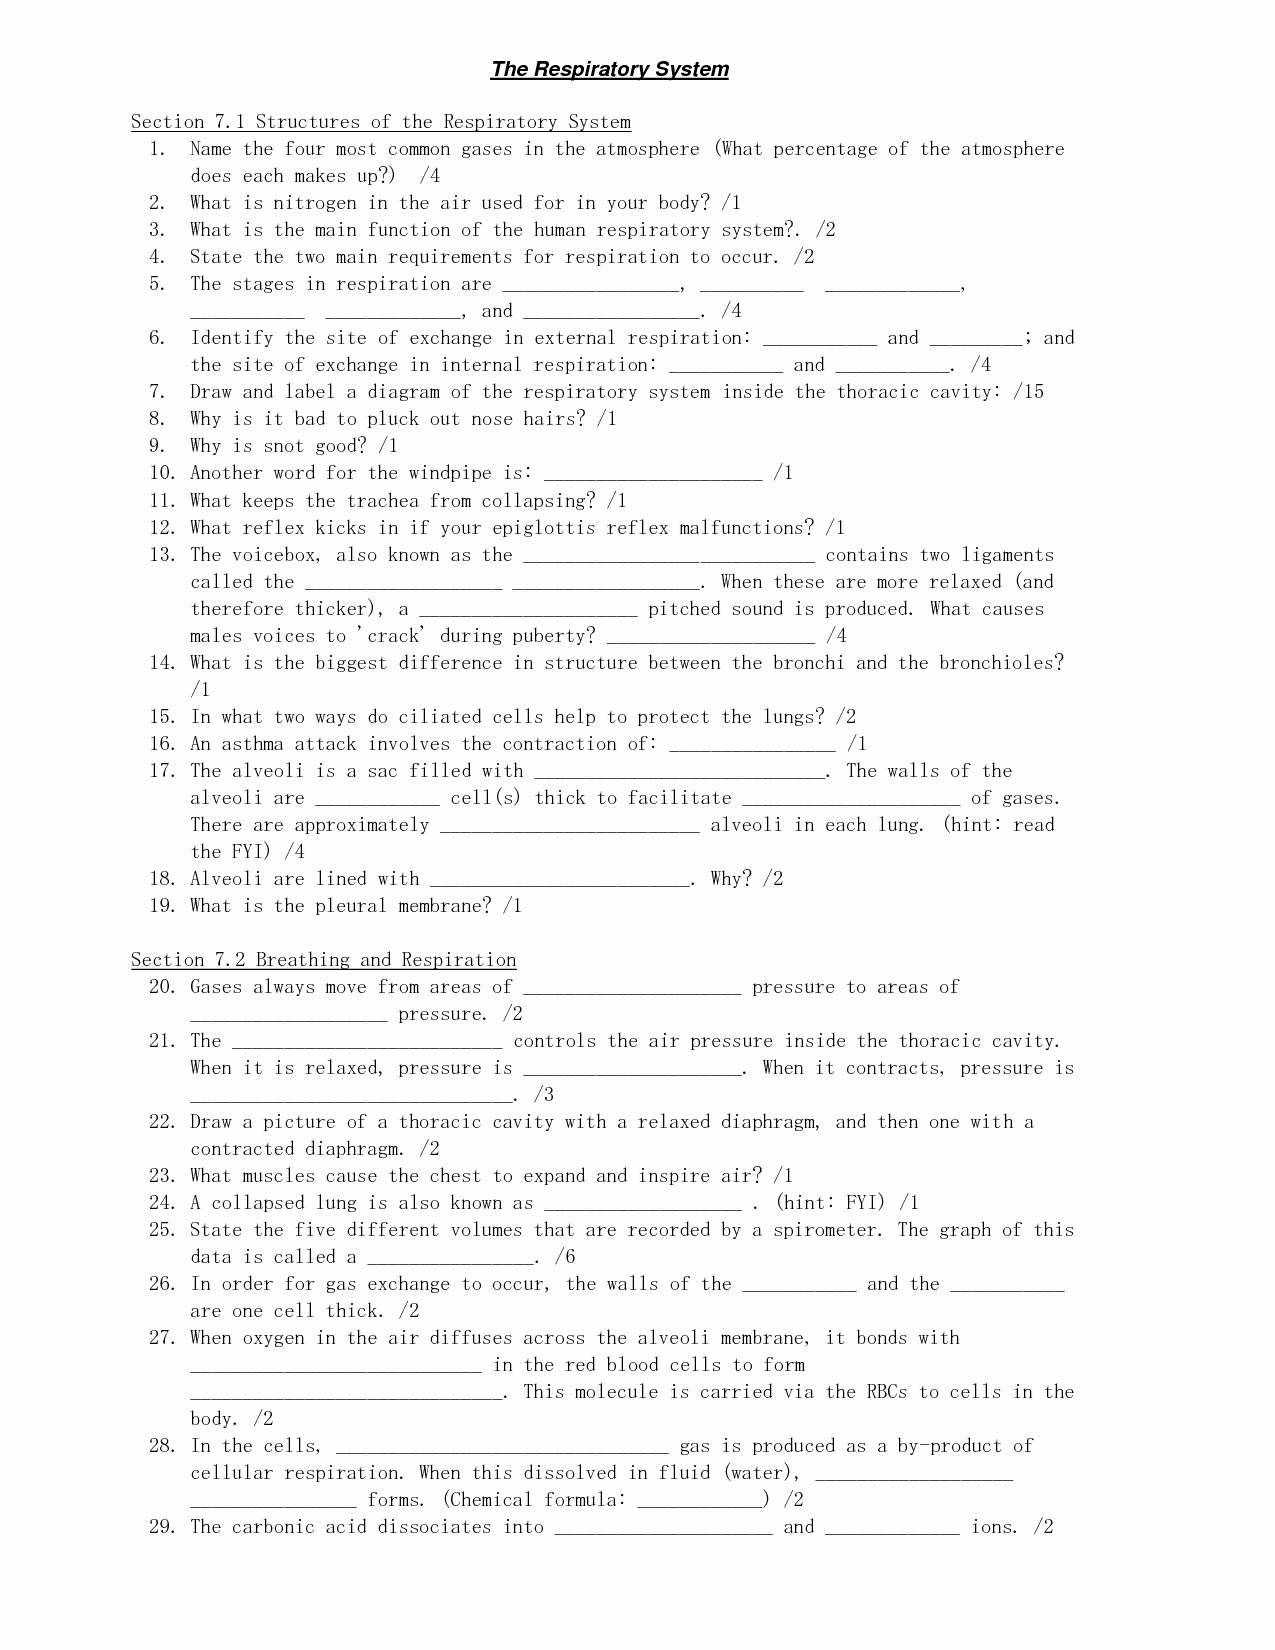 Respiratory System Worksheet Answer Key Elegant 16 Best Of the Respiratory System Worksheet Answers